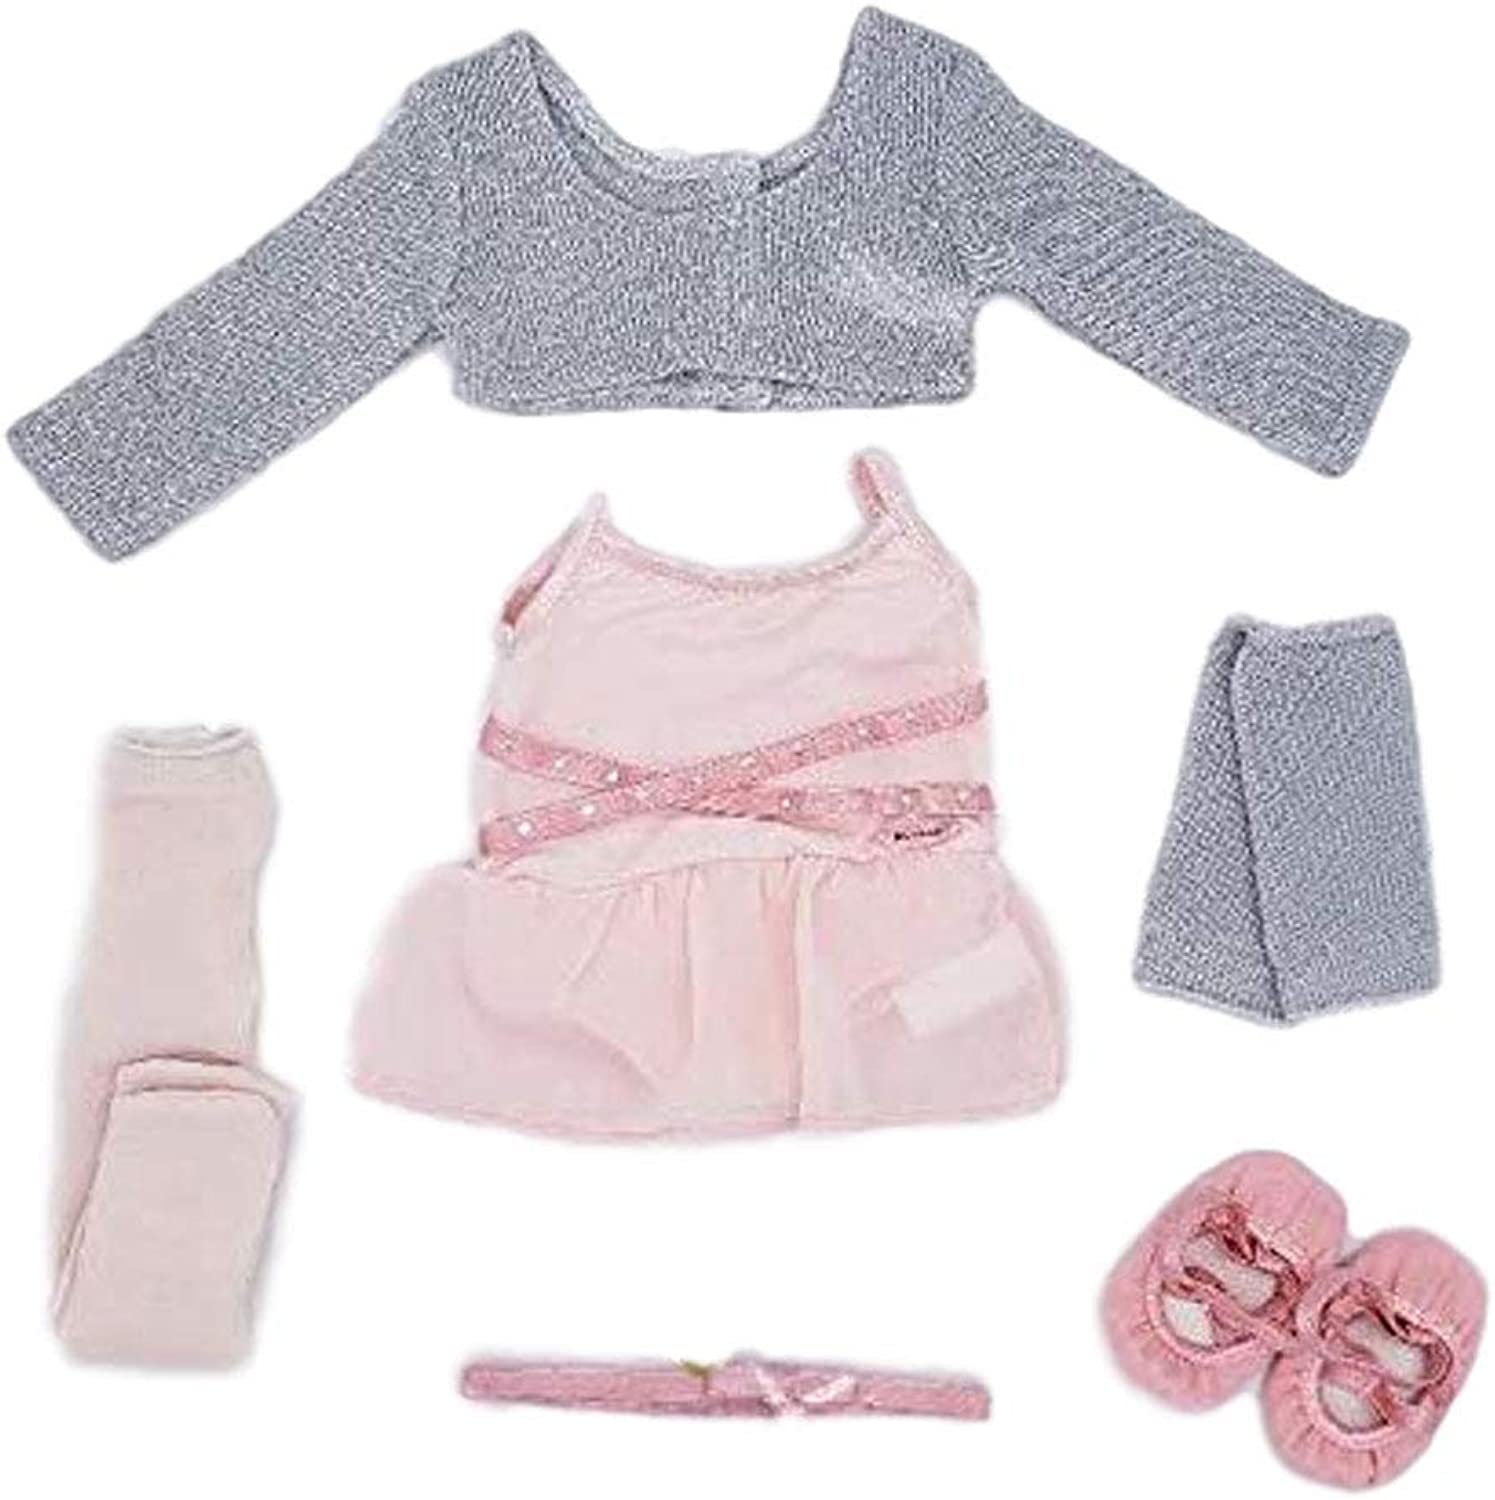 American Girl  Ballet Class Outfit for 18inch Dolls  Truly Me 2017